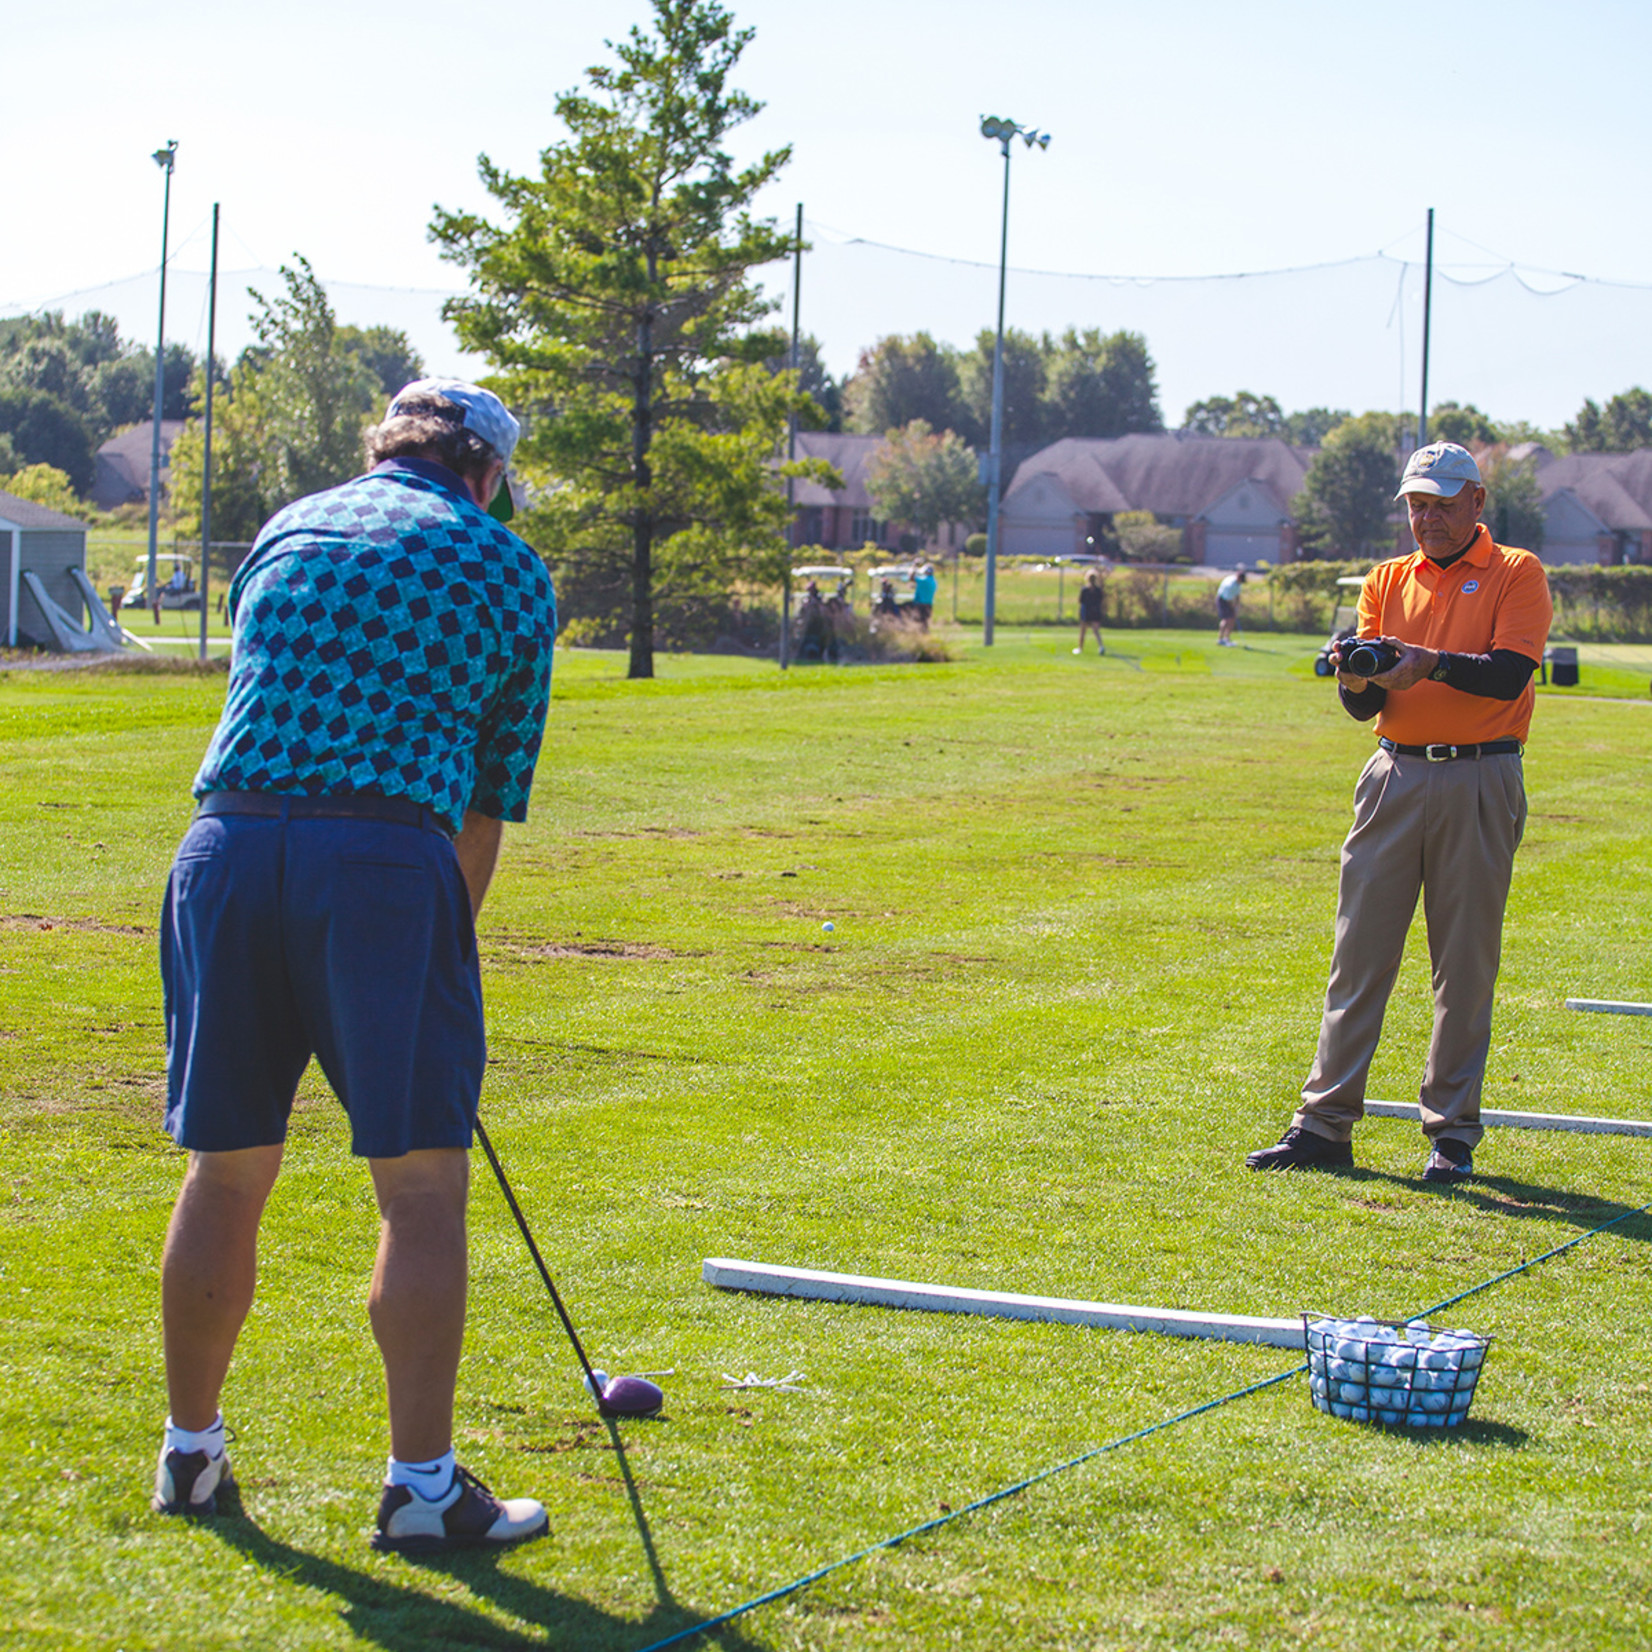 Golf Performance Academy Adult Group Lessons - 60 minute Group Lesson